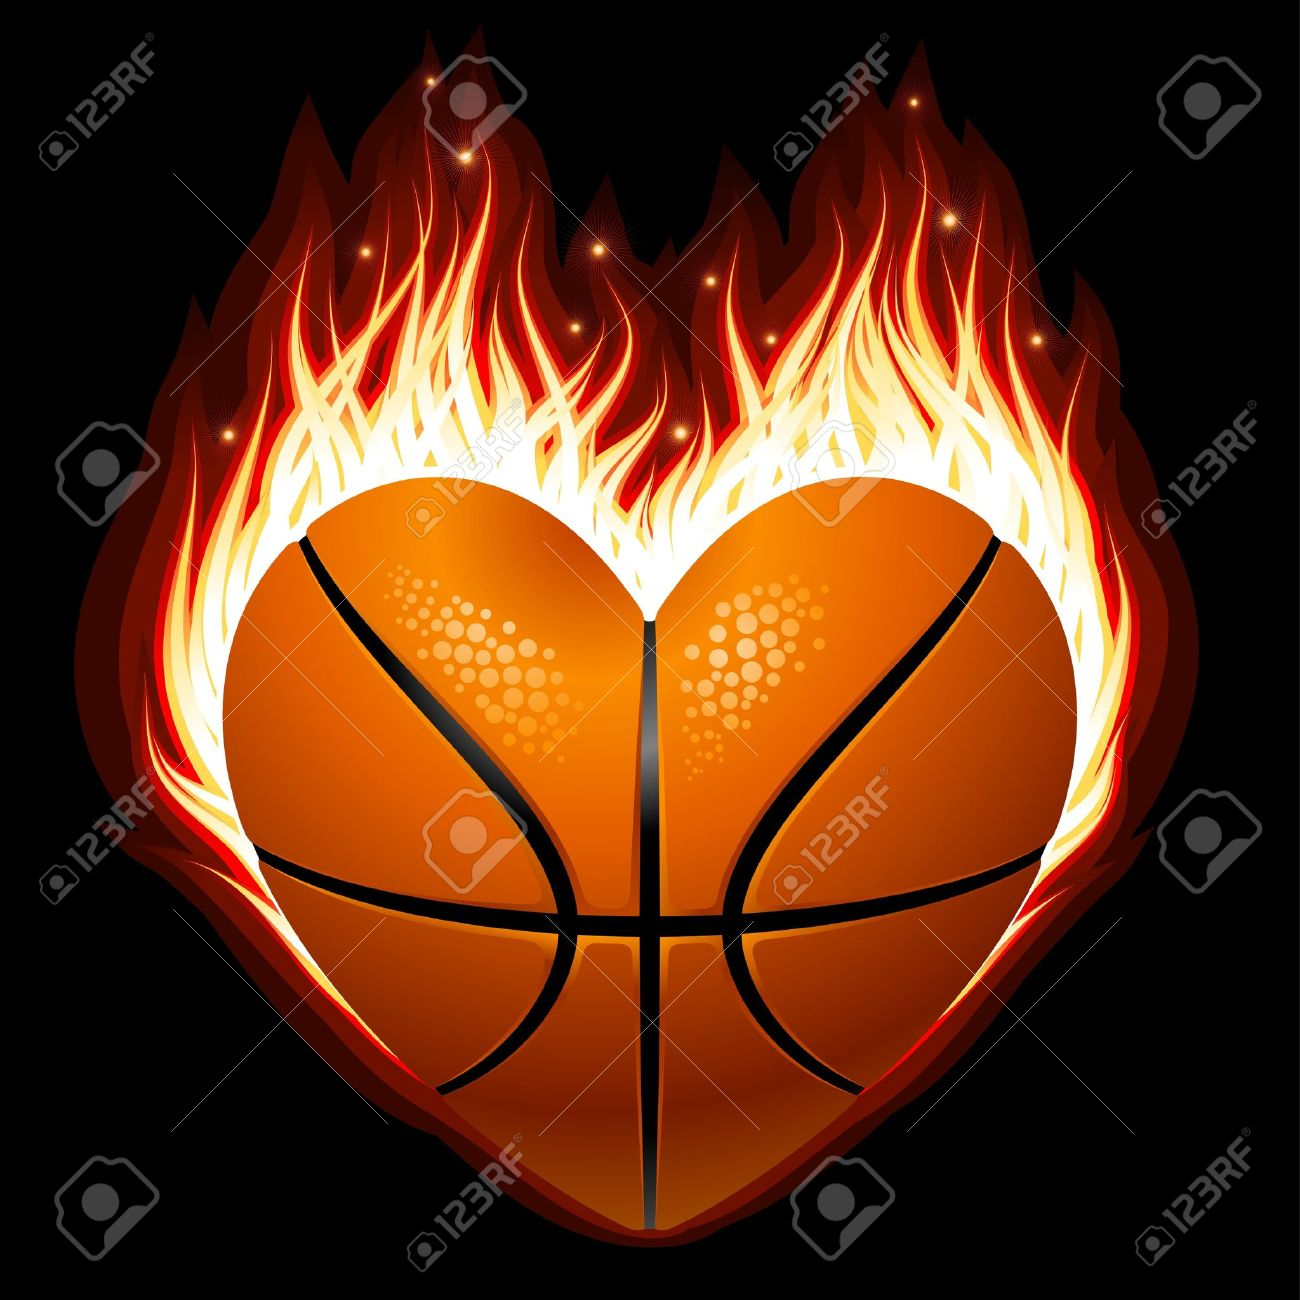 basketball on fire in the shape of heart royalty free cliparts rh 123rf com heart shaped basketball cookies heart shaped basketball png